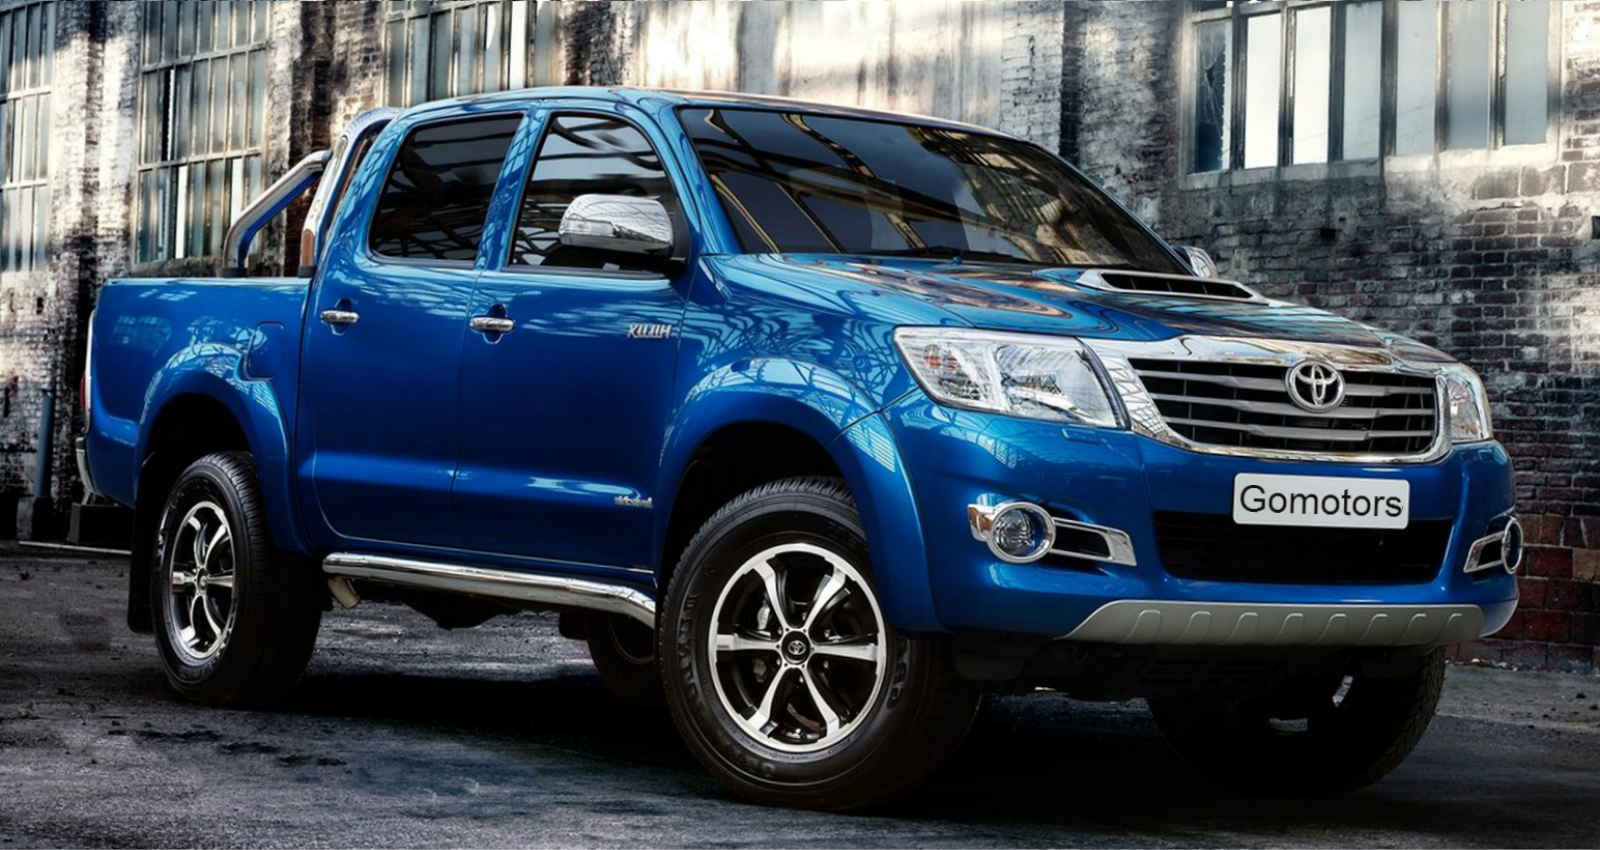 toyota hilux invincible reviews toyota hilux invincible car reviews. Black Bedroom Furniture Sets. Home Design Ideas